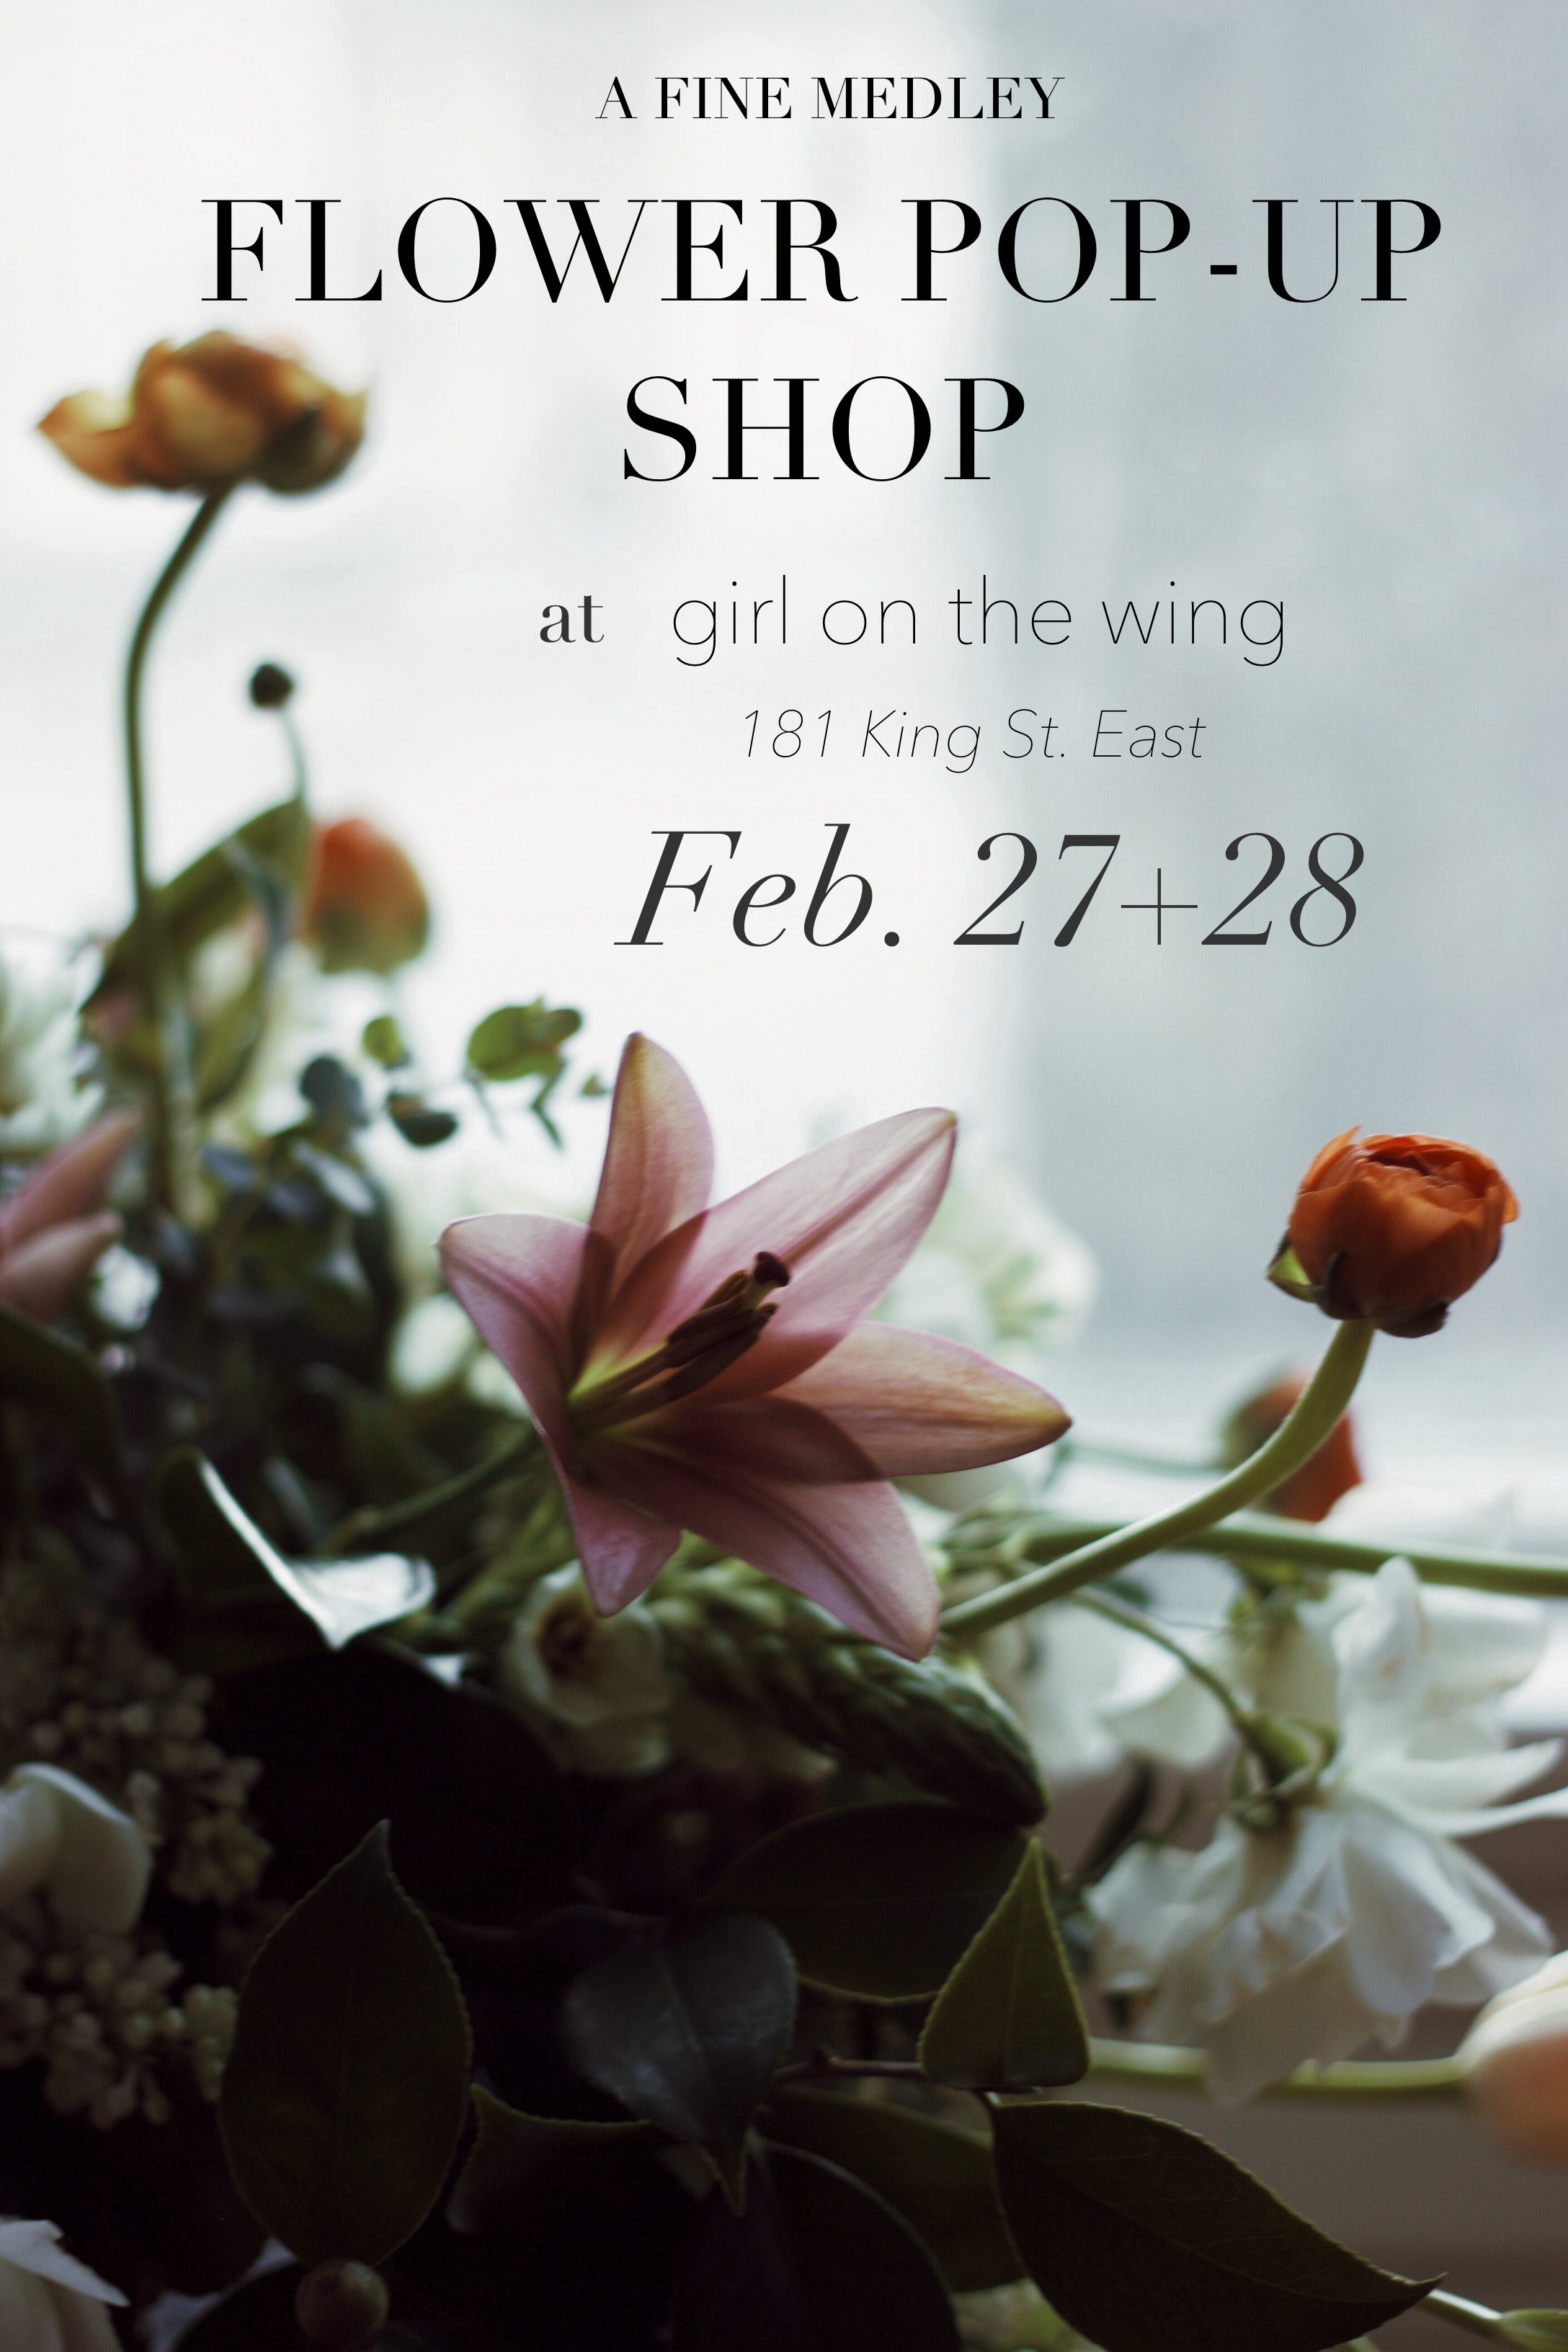 The Flower Pop-Up Shop hours are:  Friday Feb. 27th noon-6pm and Sat. Feb 28th 11am-5pm